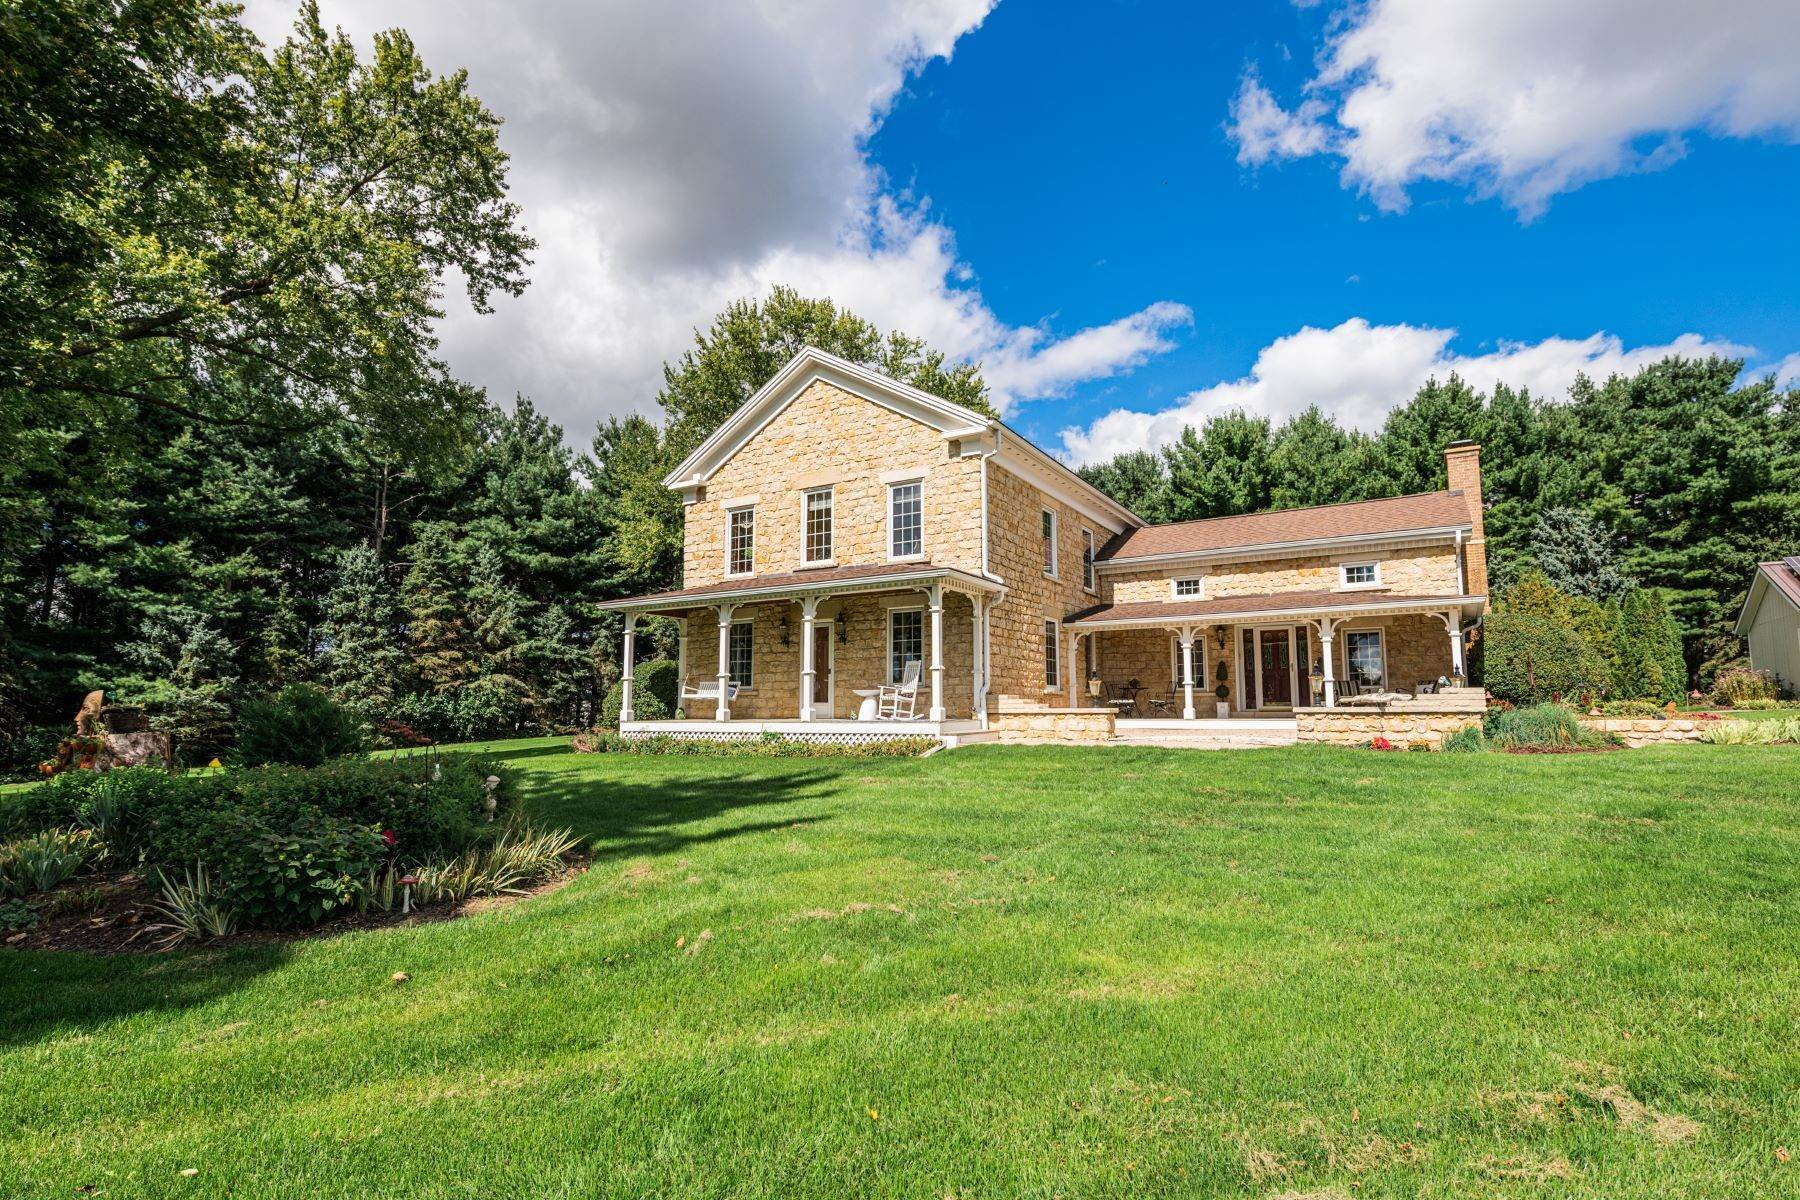 Single Family Homes for Sale at Enchanting 5 Acre Property 8936 W Cedarville Road Lena, Illinois 61048 United States